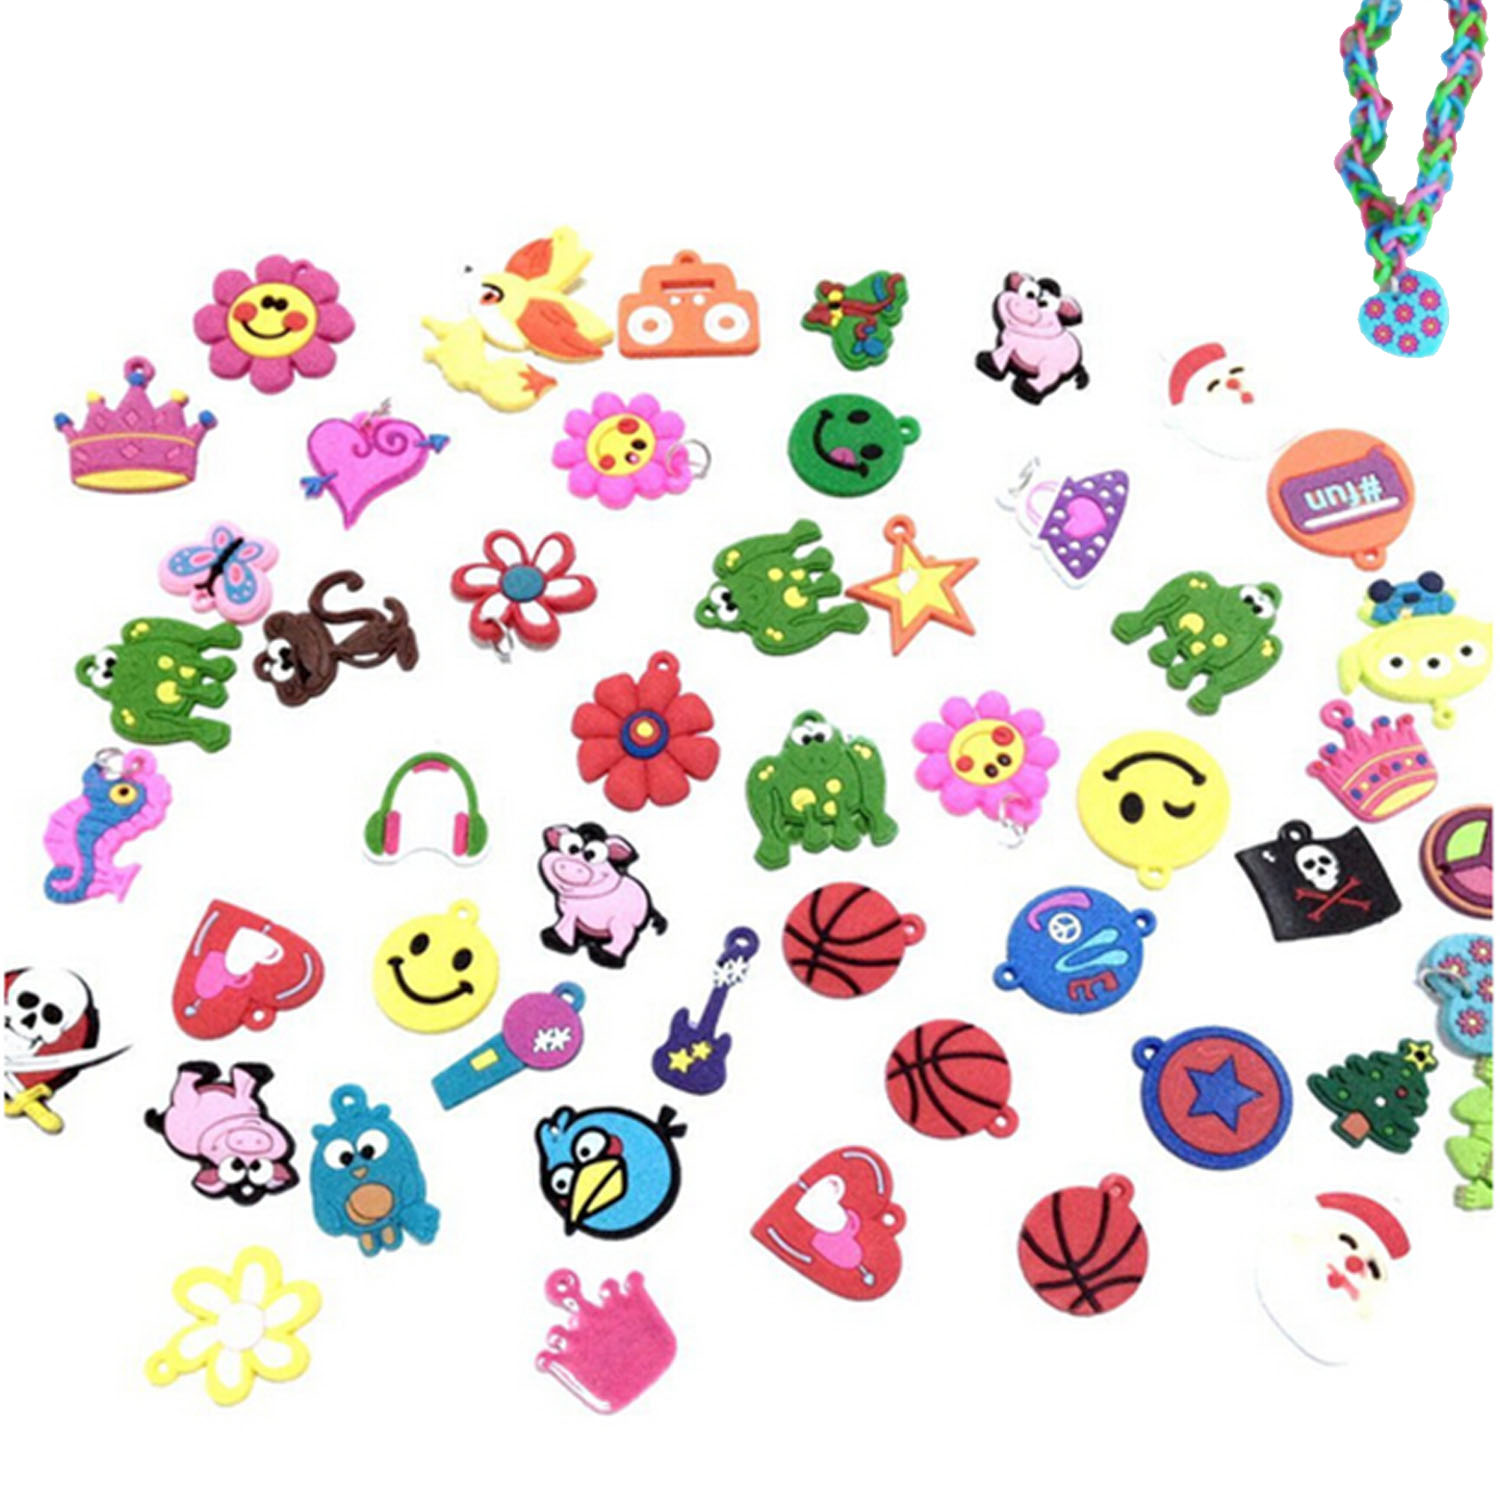 30Pcs Charms Pendants for DIY Colorful Loom Rubber Band Bracelet Making Kit Random Style